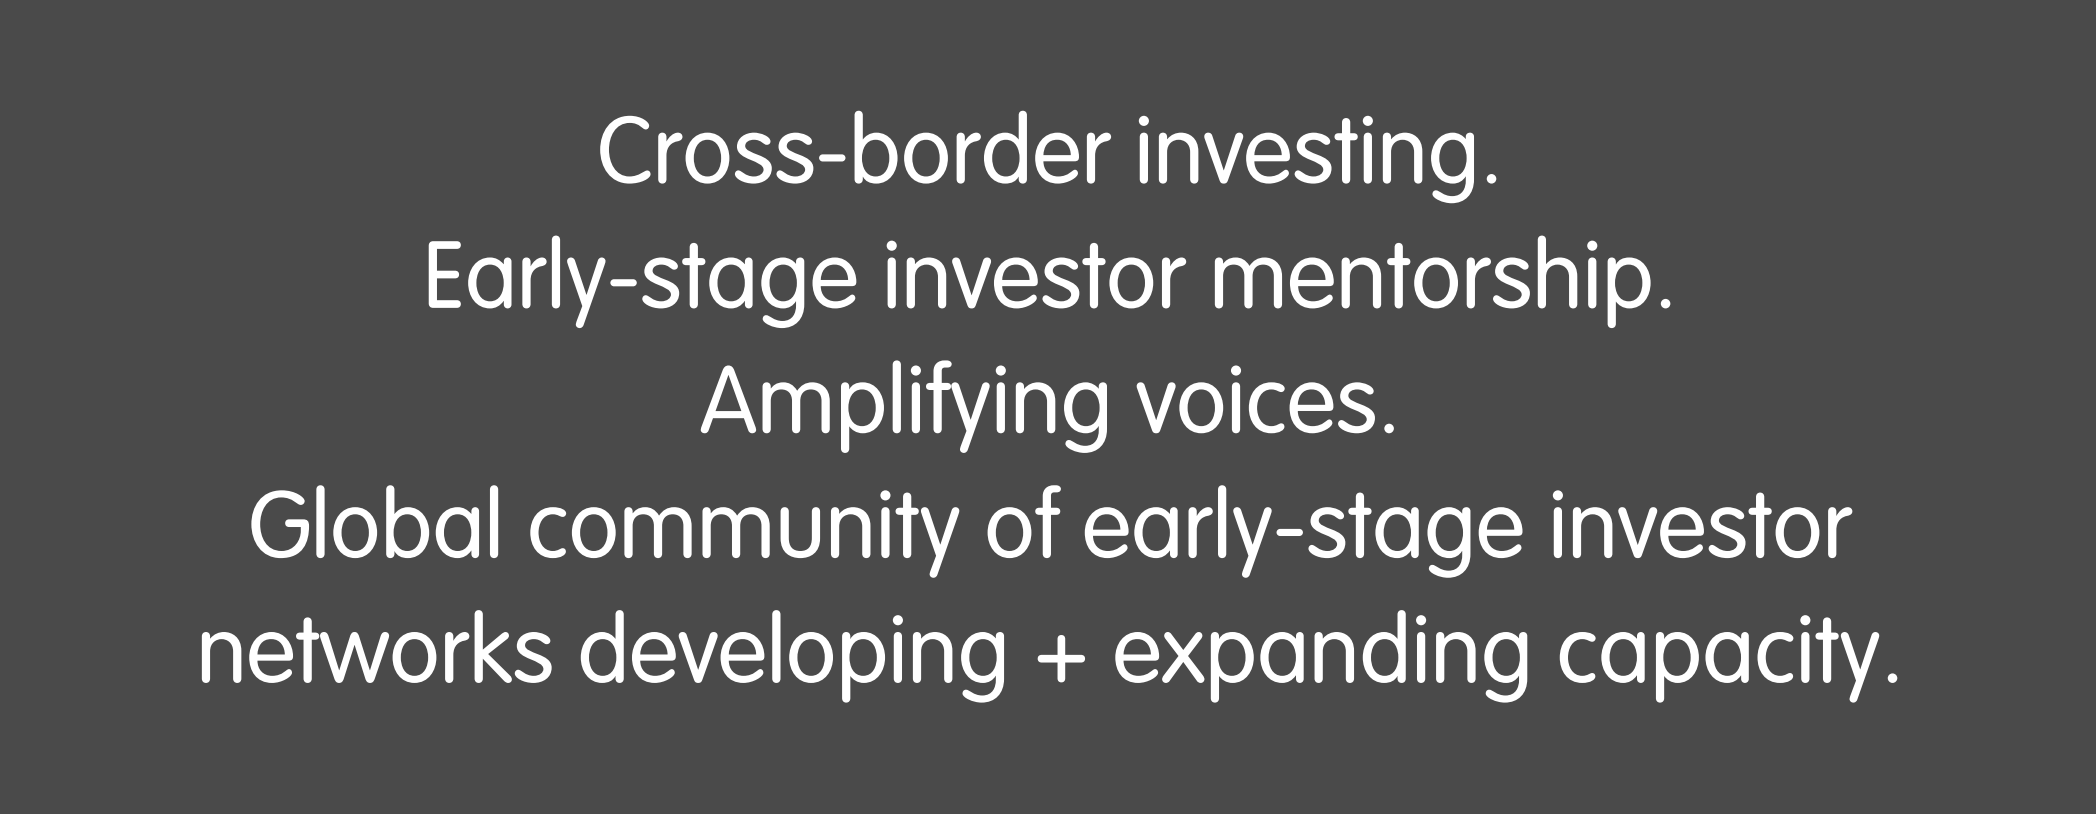 ross-border investing. Early-stage investor mentorship. Amplifying voices.   Global community of early-stage investor networks developing + expanding capacity.